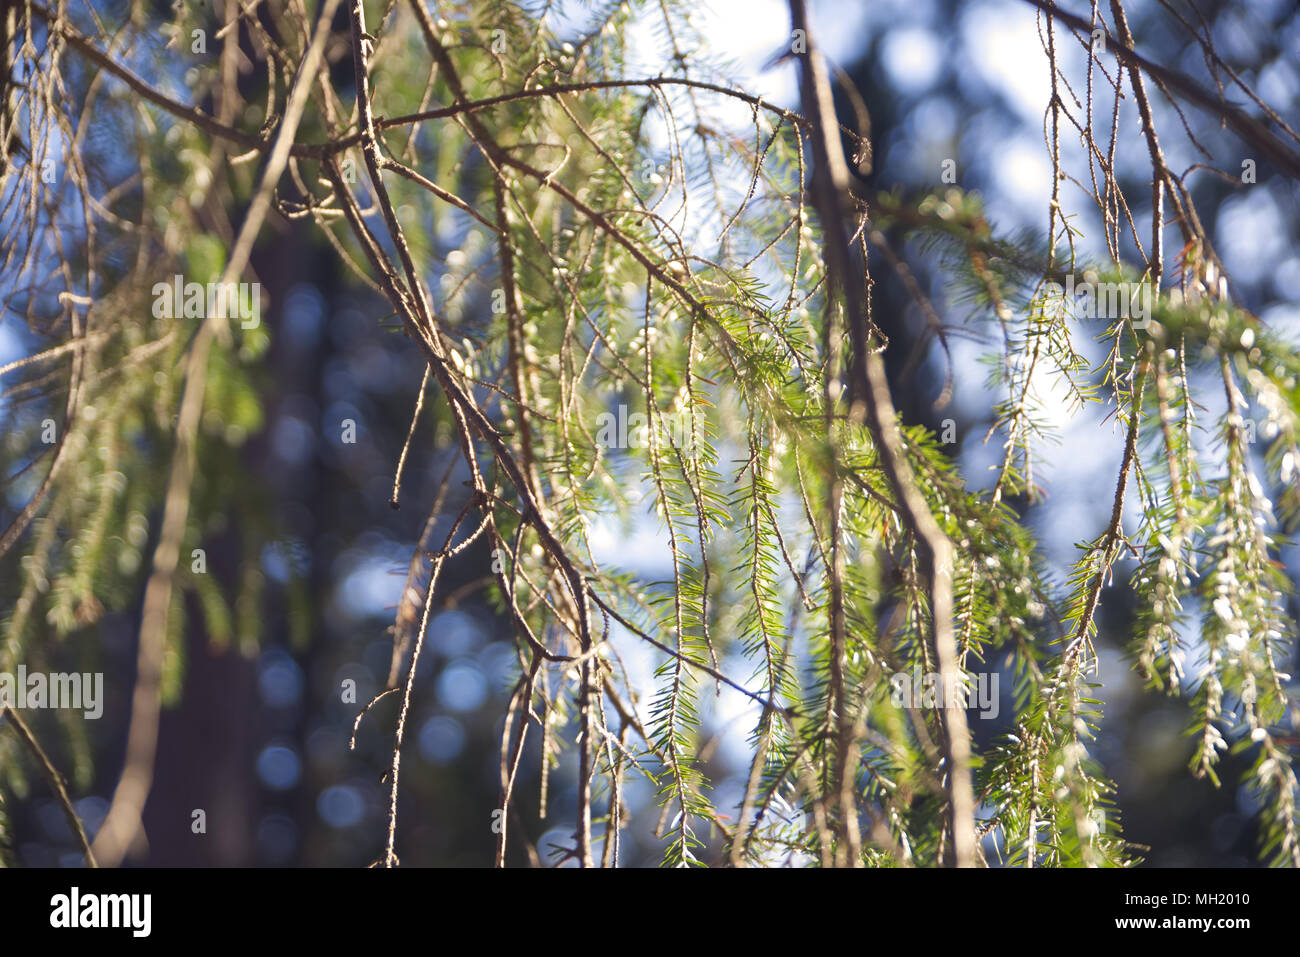 Branches and spikes of Norway spruce isolated with lots of bokeh. - Stock Image